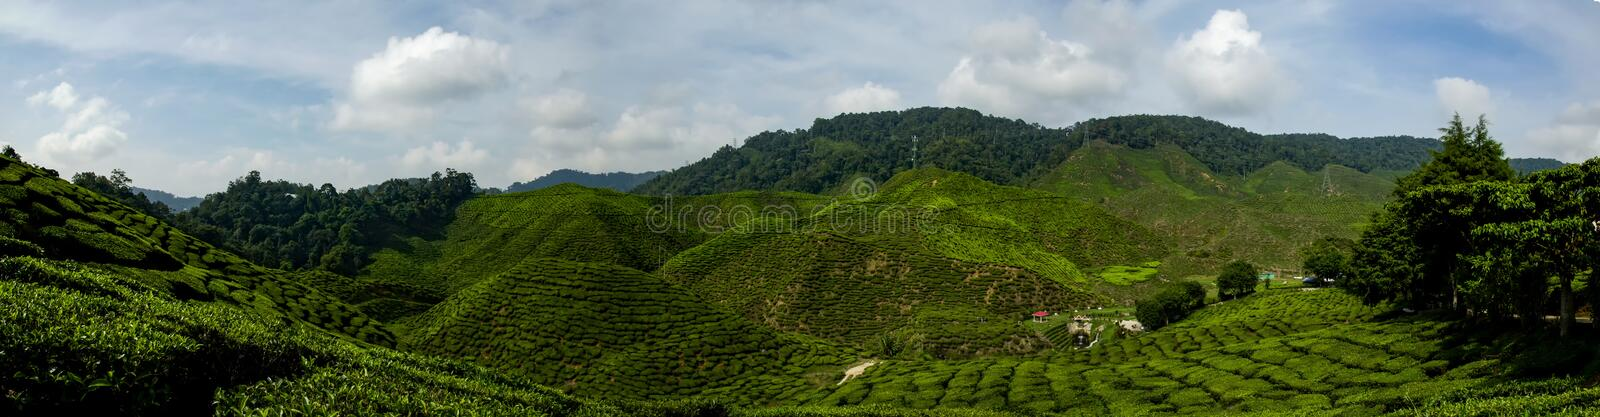 Beautiful panorama view at Cameron Highlands, Malaysia with green nature tea plantation near the hill. royalty free stock photo